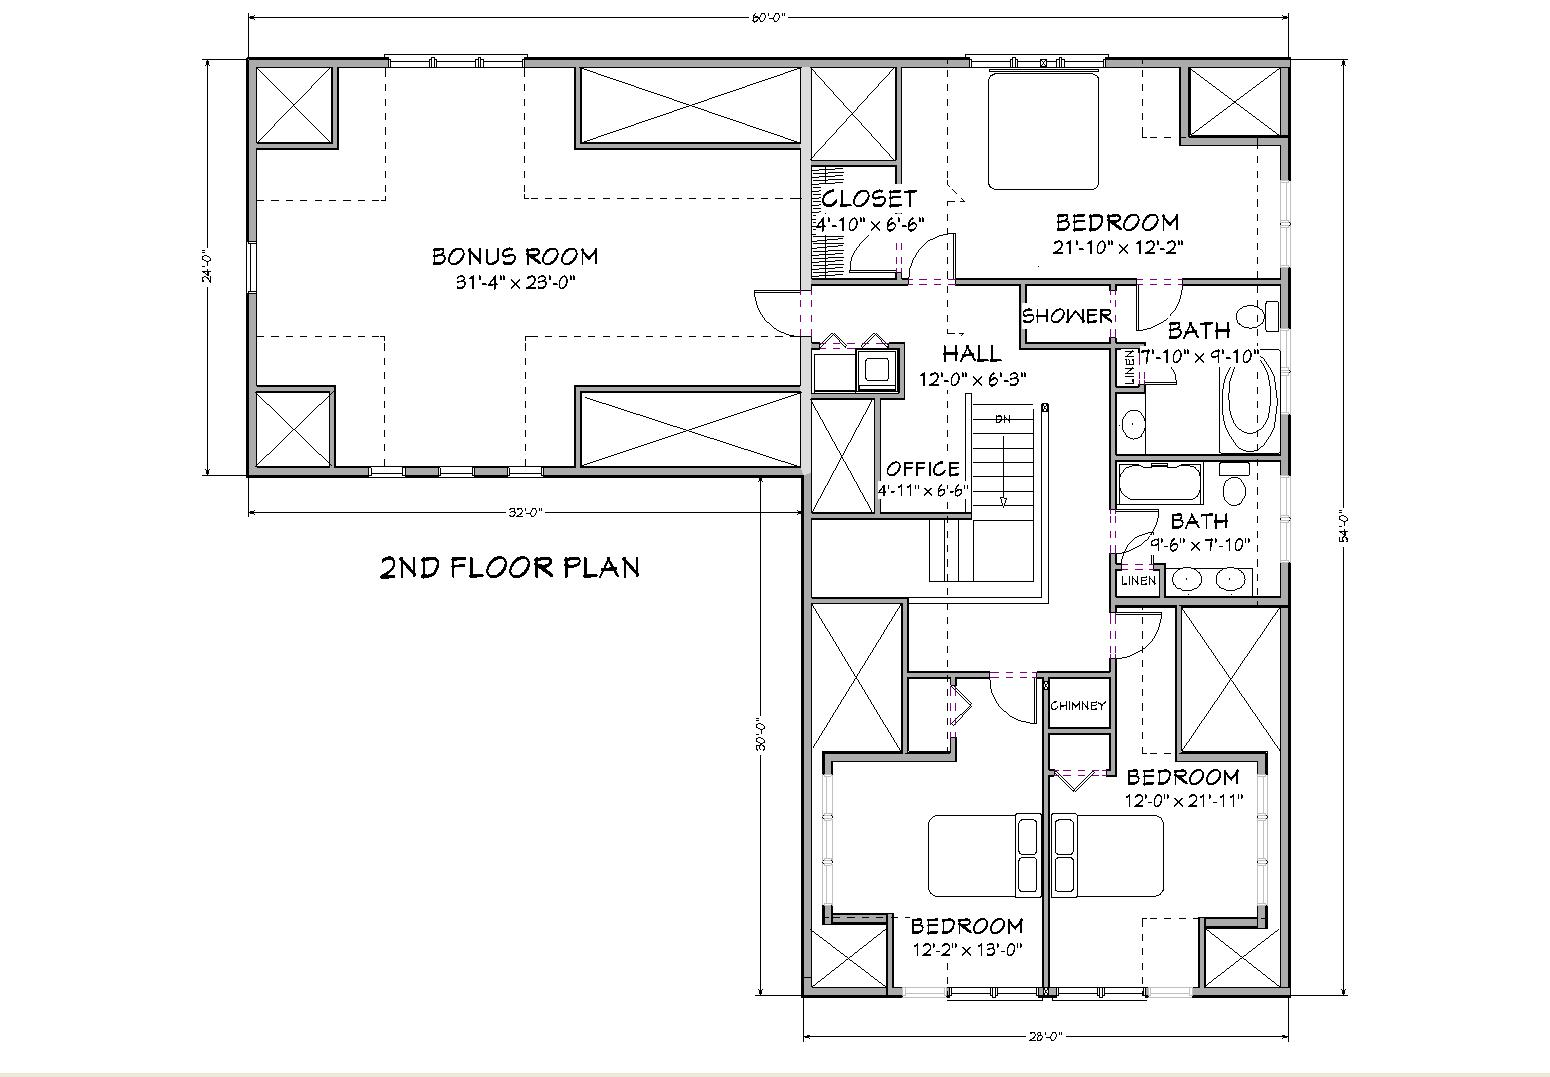 3000 square foot home plans floor plans for Home designs 3000 sq ft